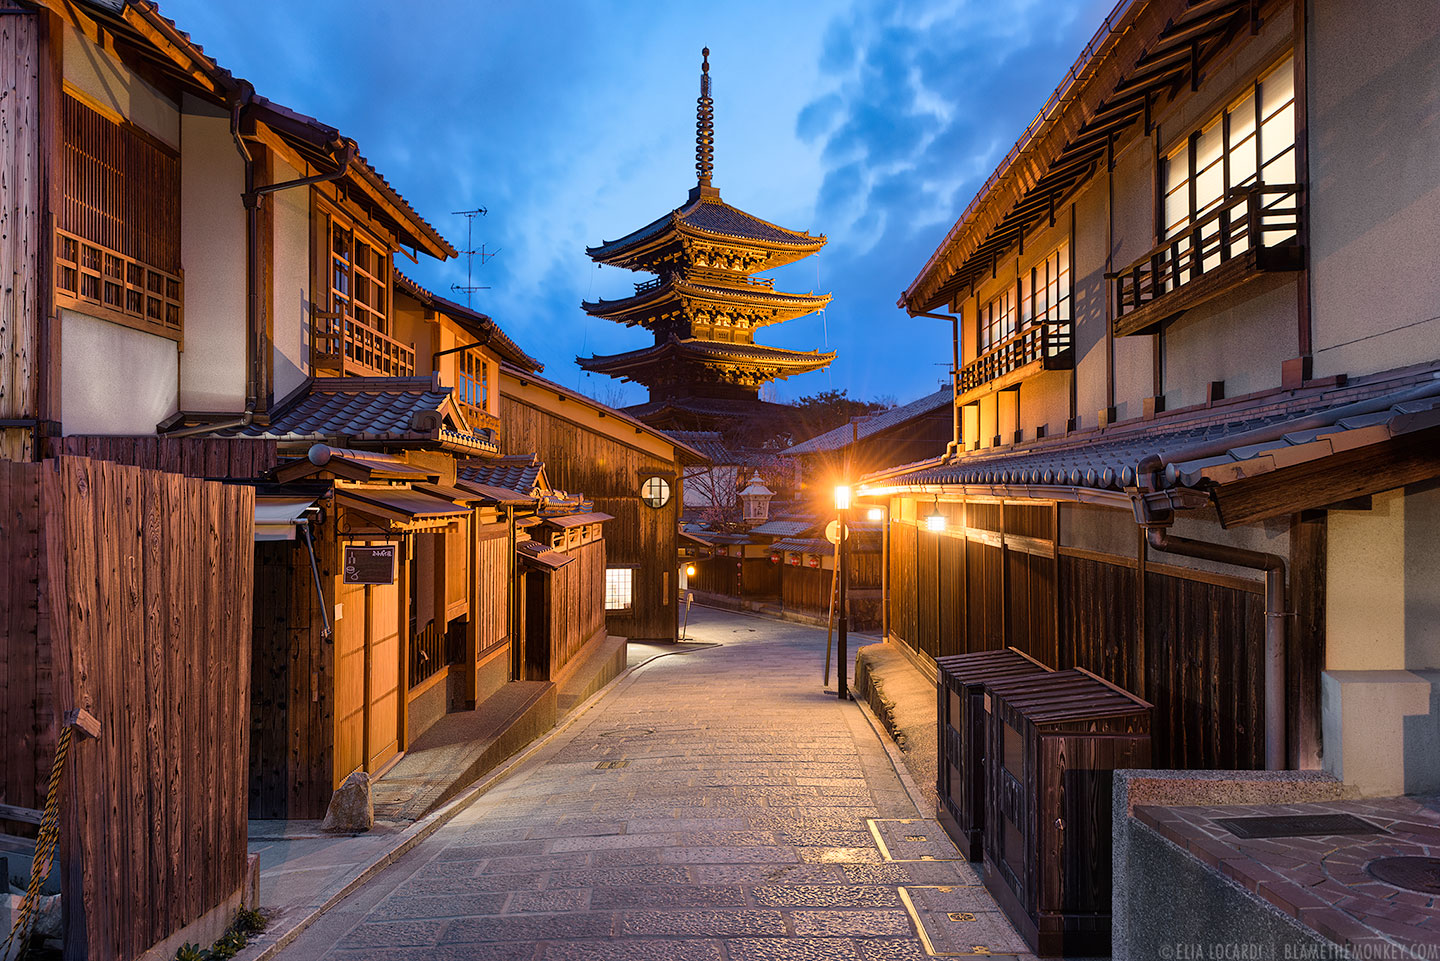 Elia-Locardi-Travel-Photograhy-The-Soul-of-Kyoto-Japan-1440-60q.jpg